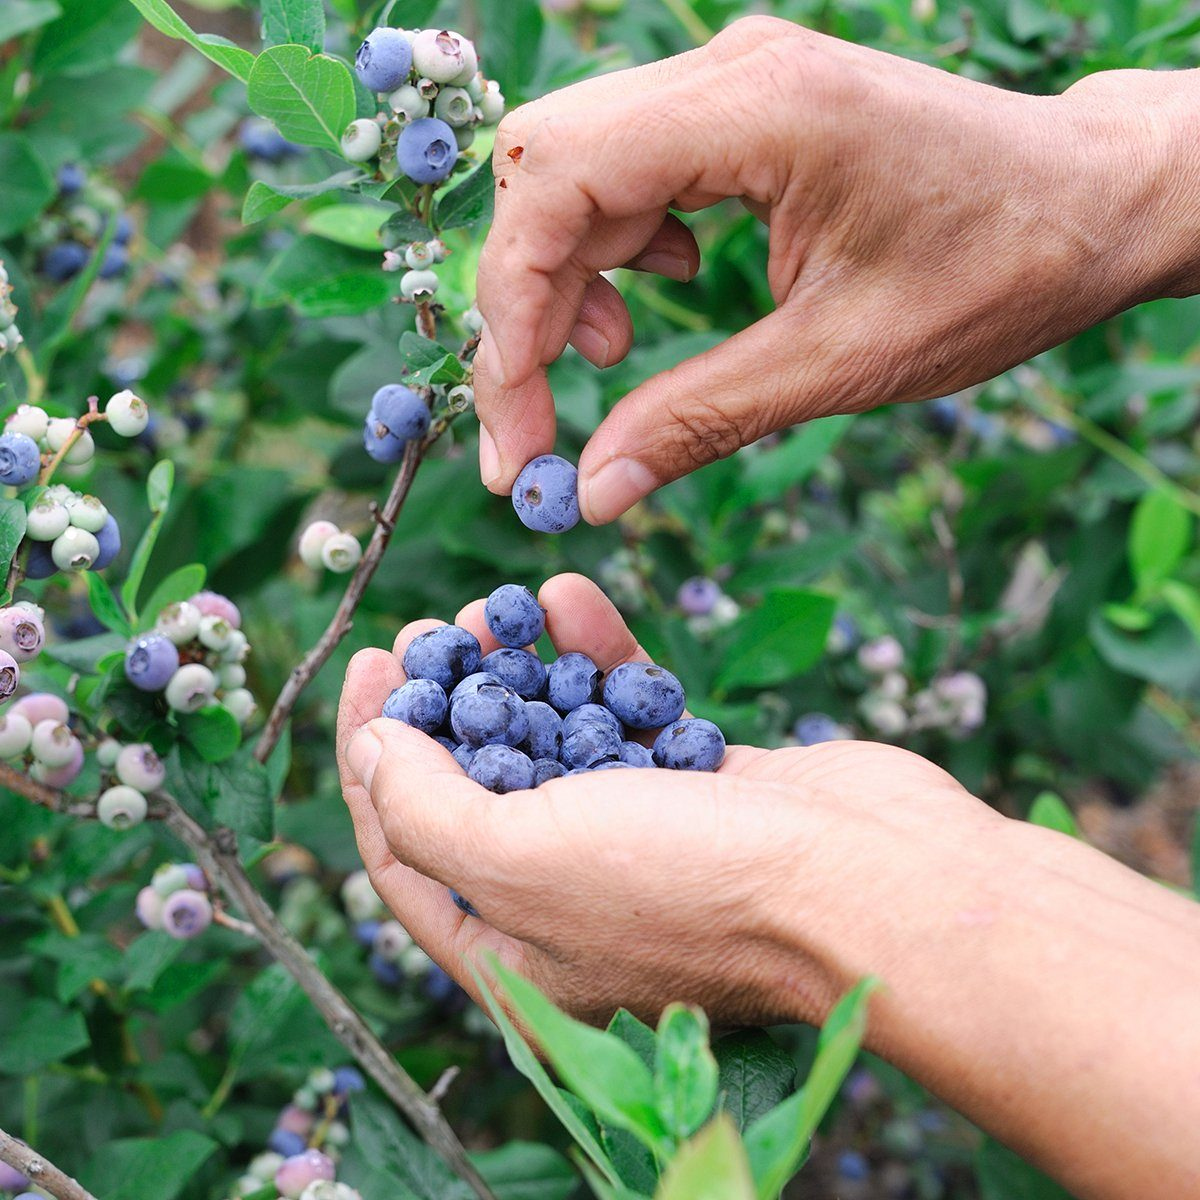 close up on blueberry picking by hand; Shutterstock ID 452575339; Job (TFH, TOH, RD, BNB, CWM, CM): TOH